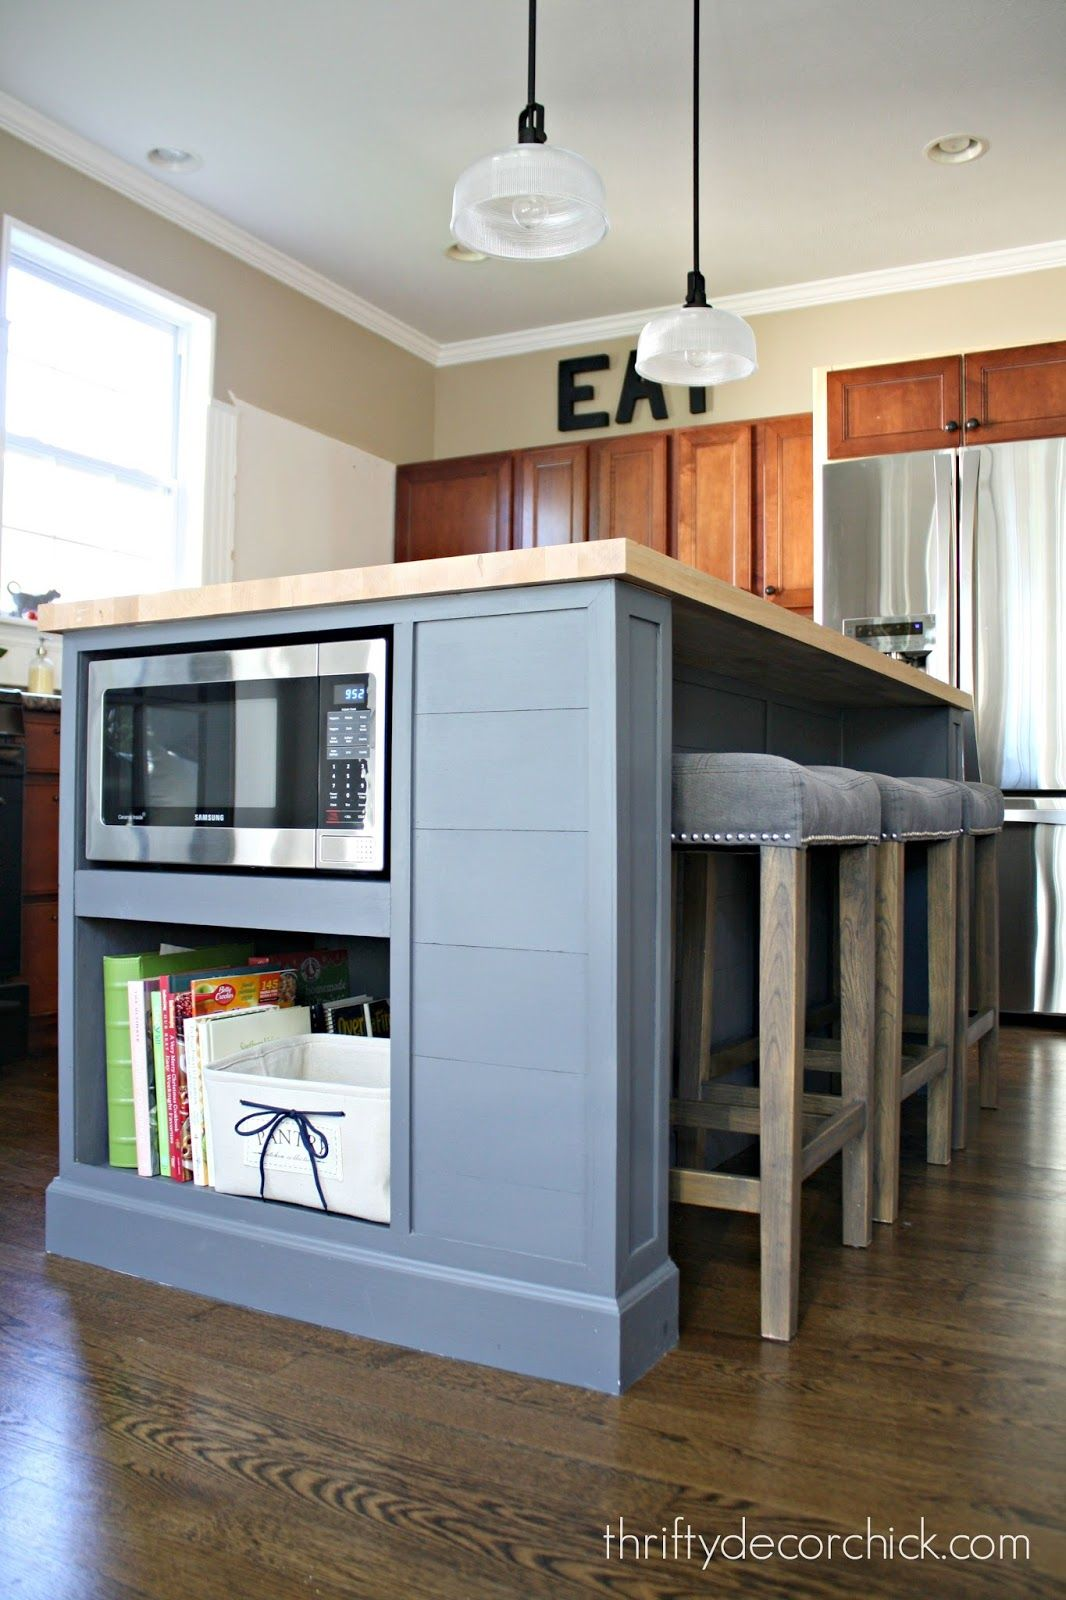 Adding Microwave In Island Put Door That Swings Up To Cover